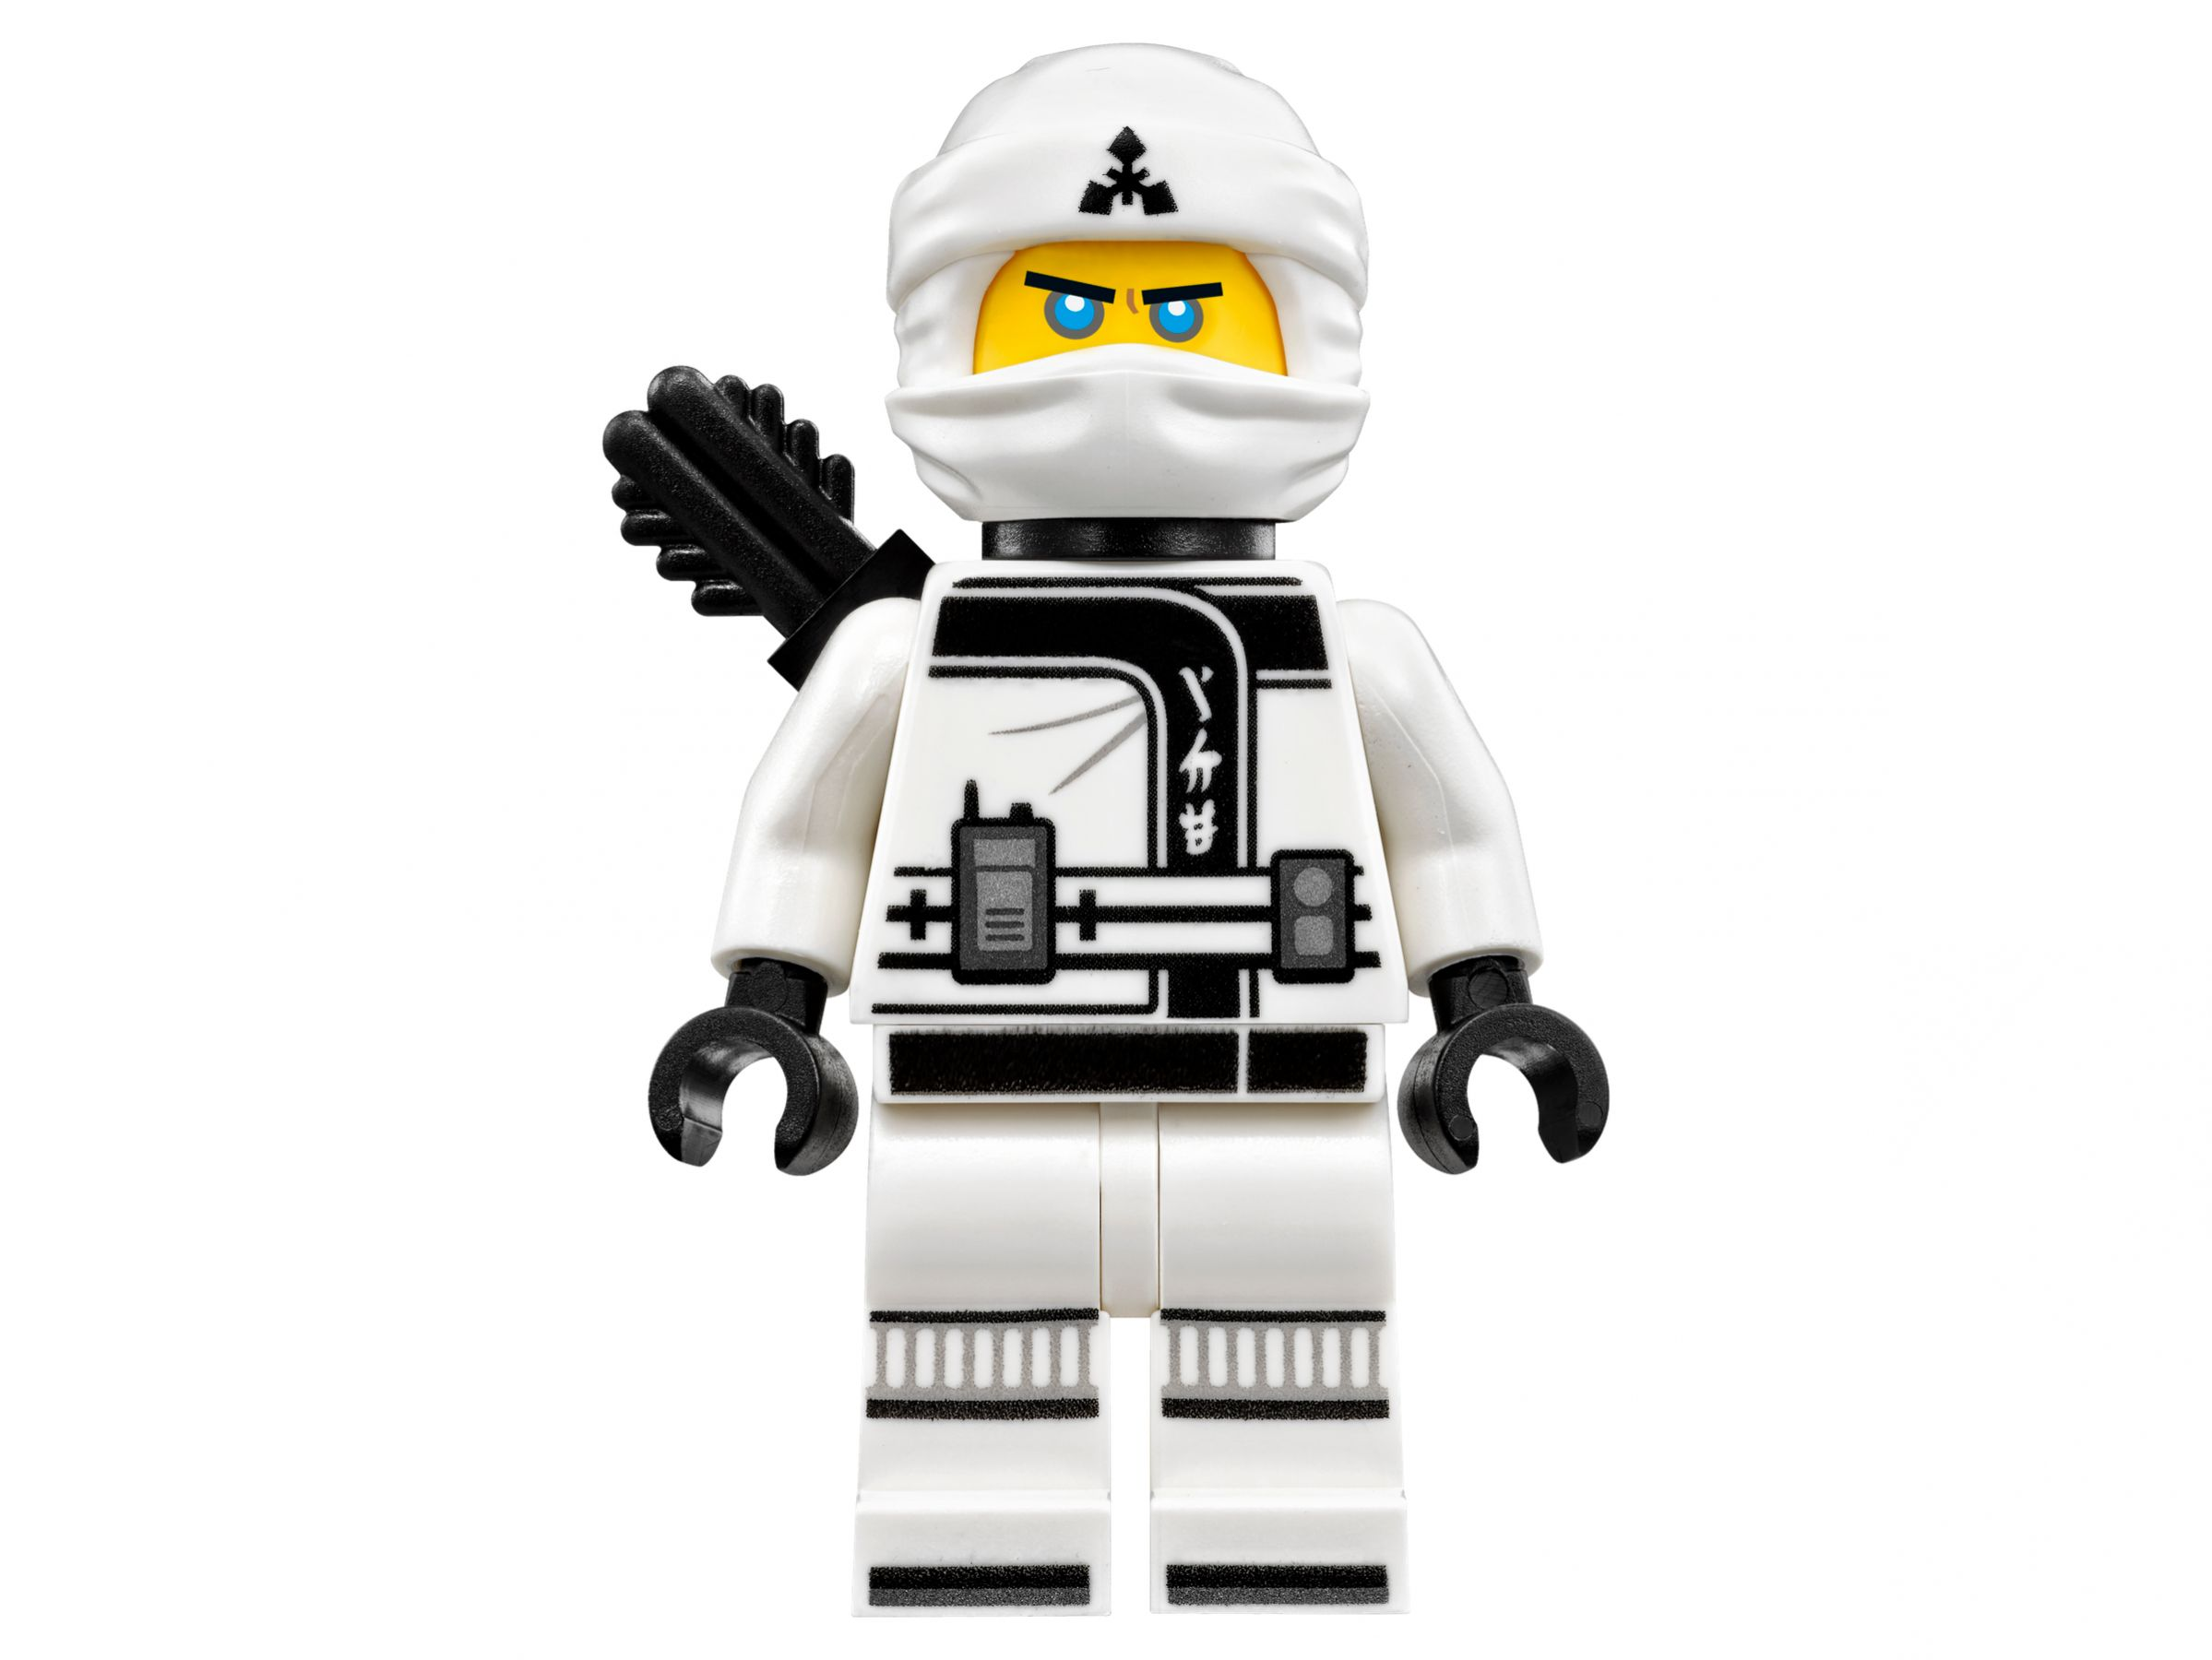 LEGO The LEGO Ninjago Movie 70616 Zane's Eis-Raupe LEGO_70616_alt10.jpg